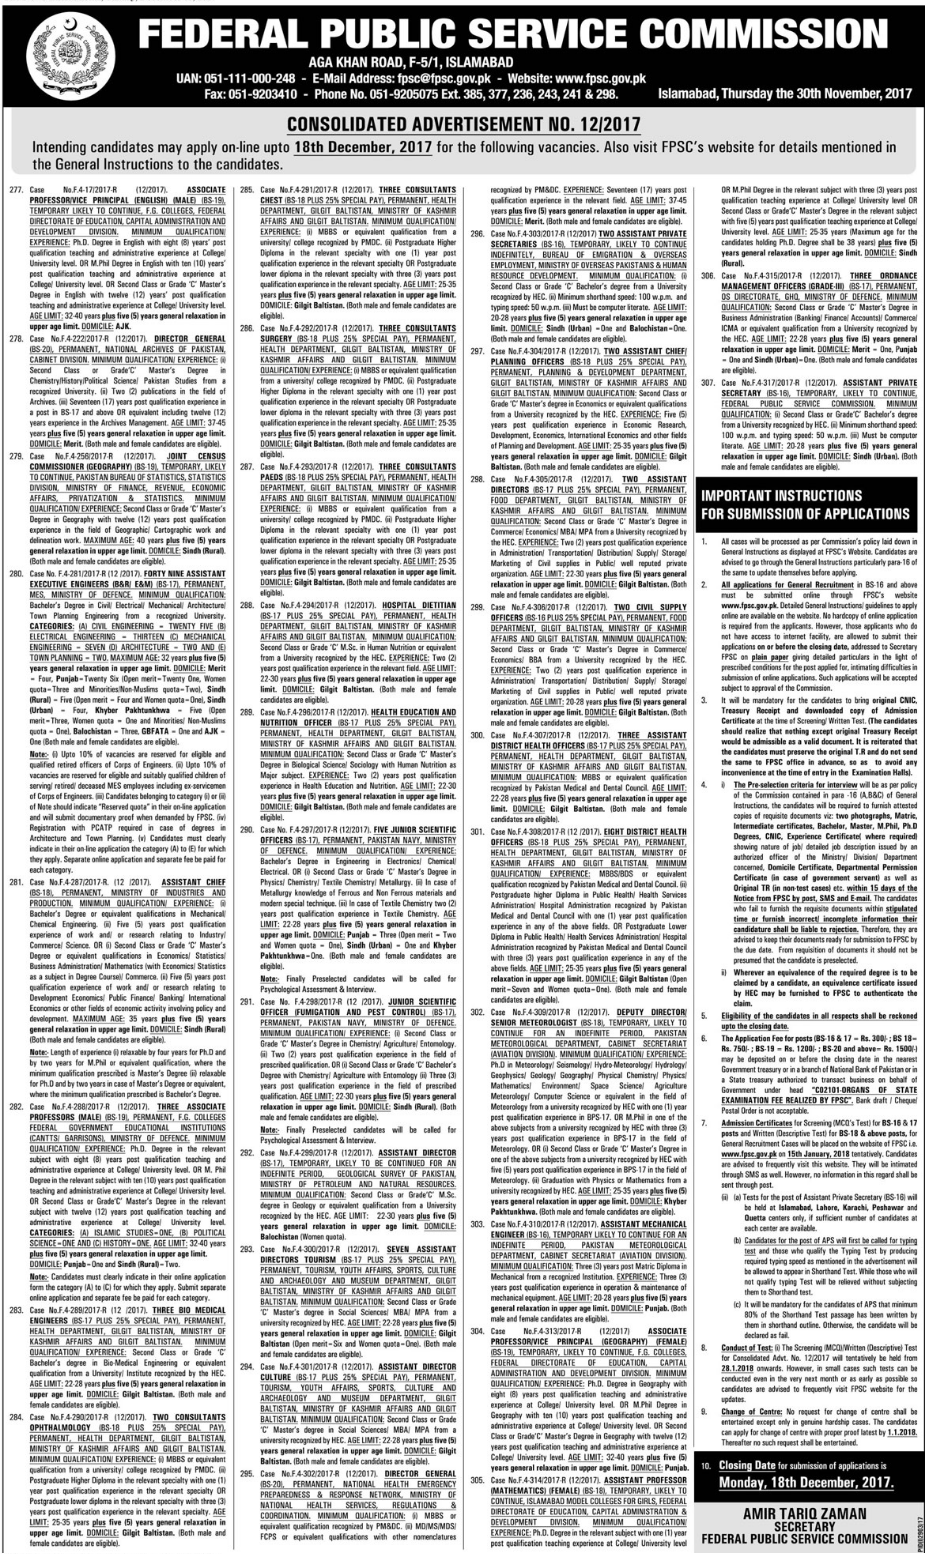 FPSC required Principal, Consultant & Director General